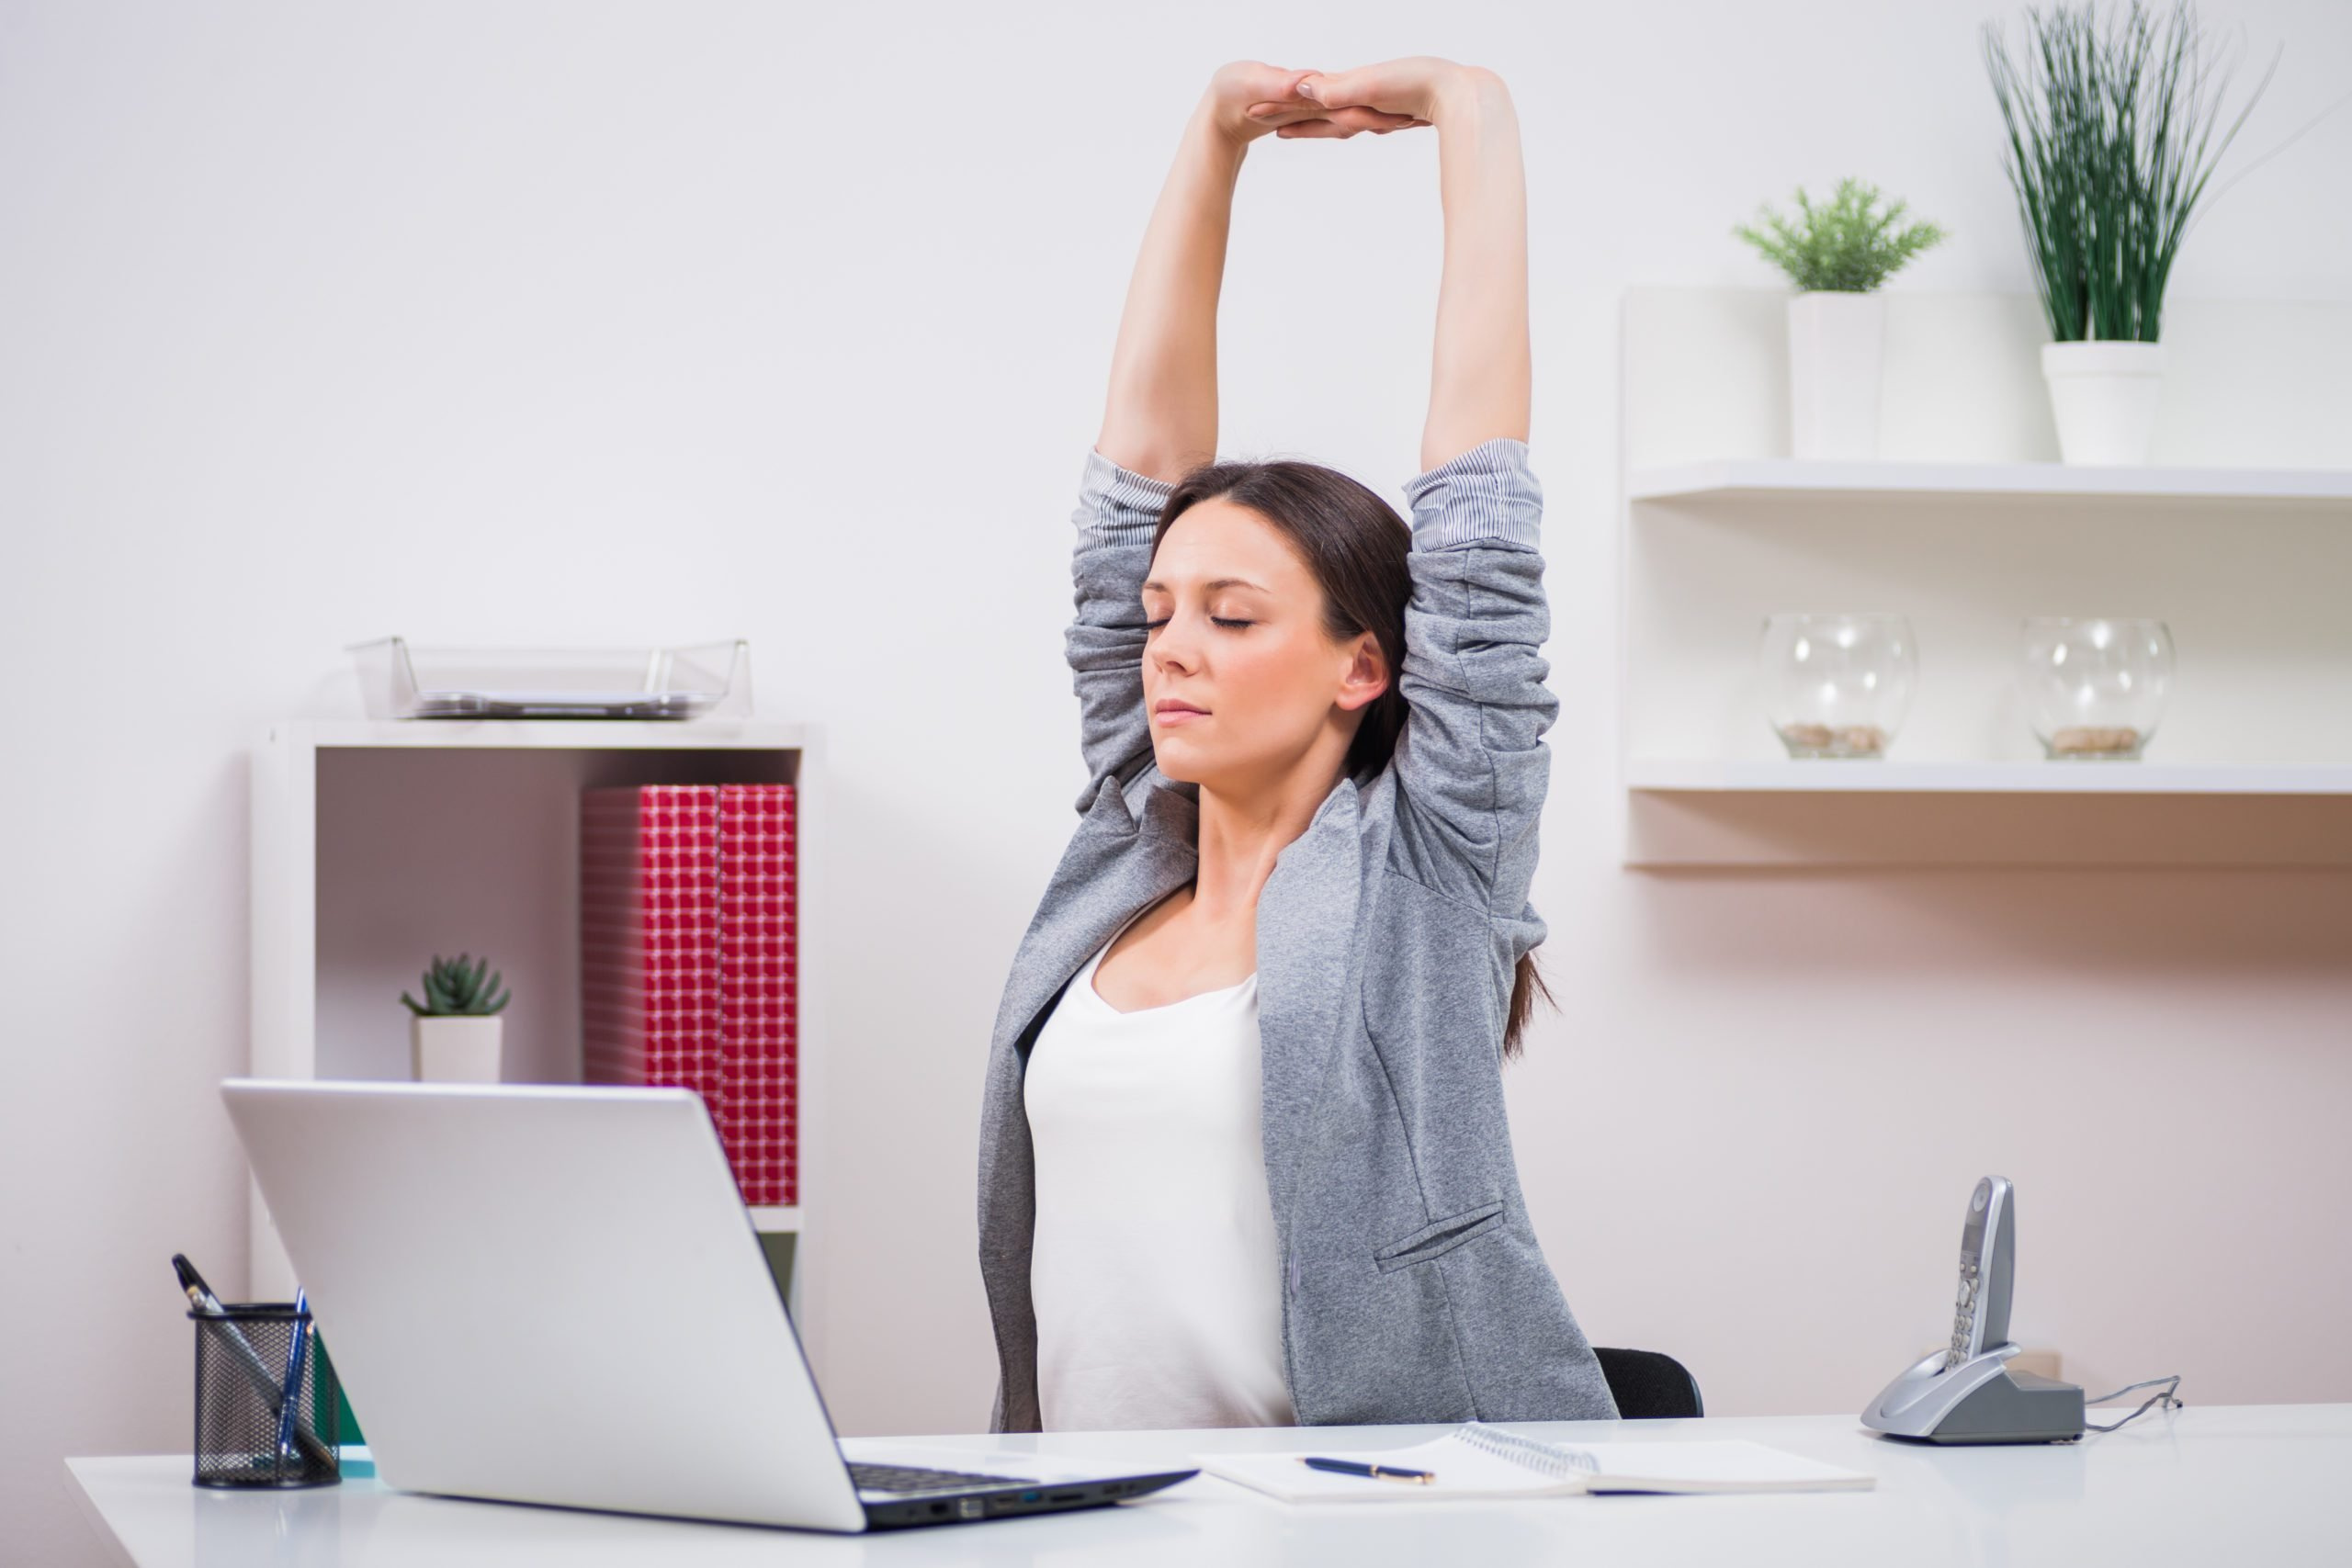 Young,businesswoman,is,relaxing,in,her,office.,she,is,stretching